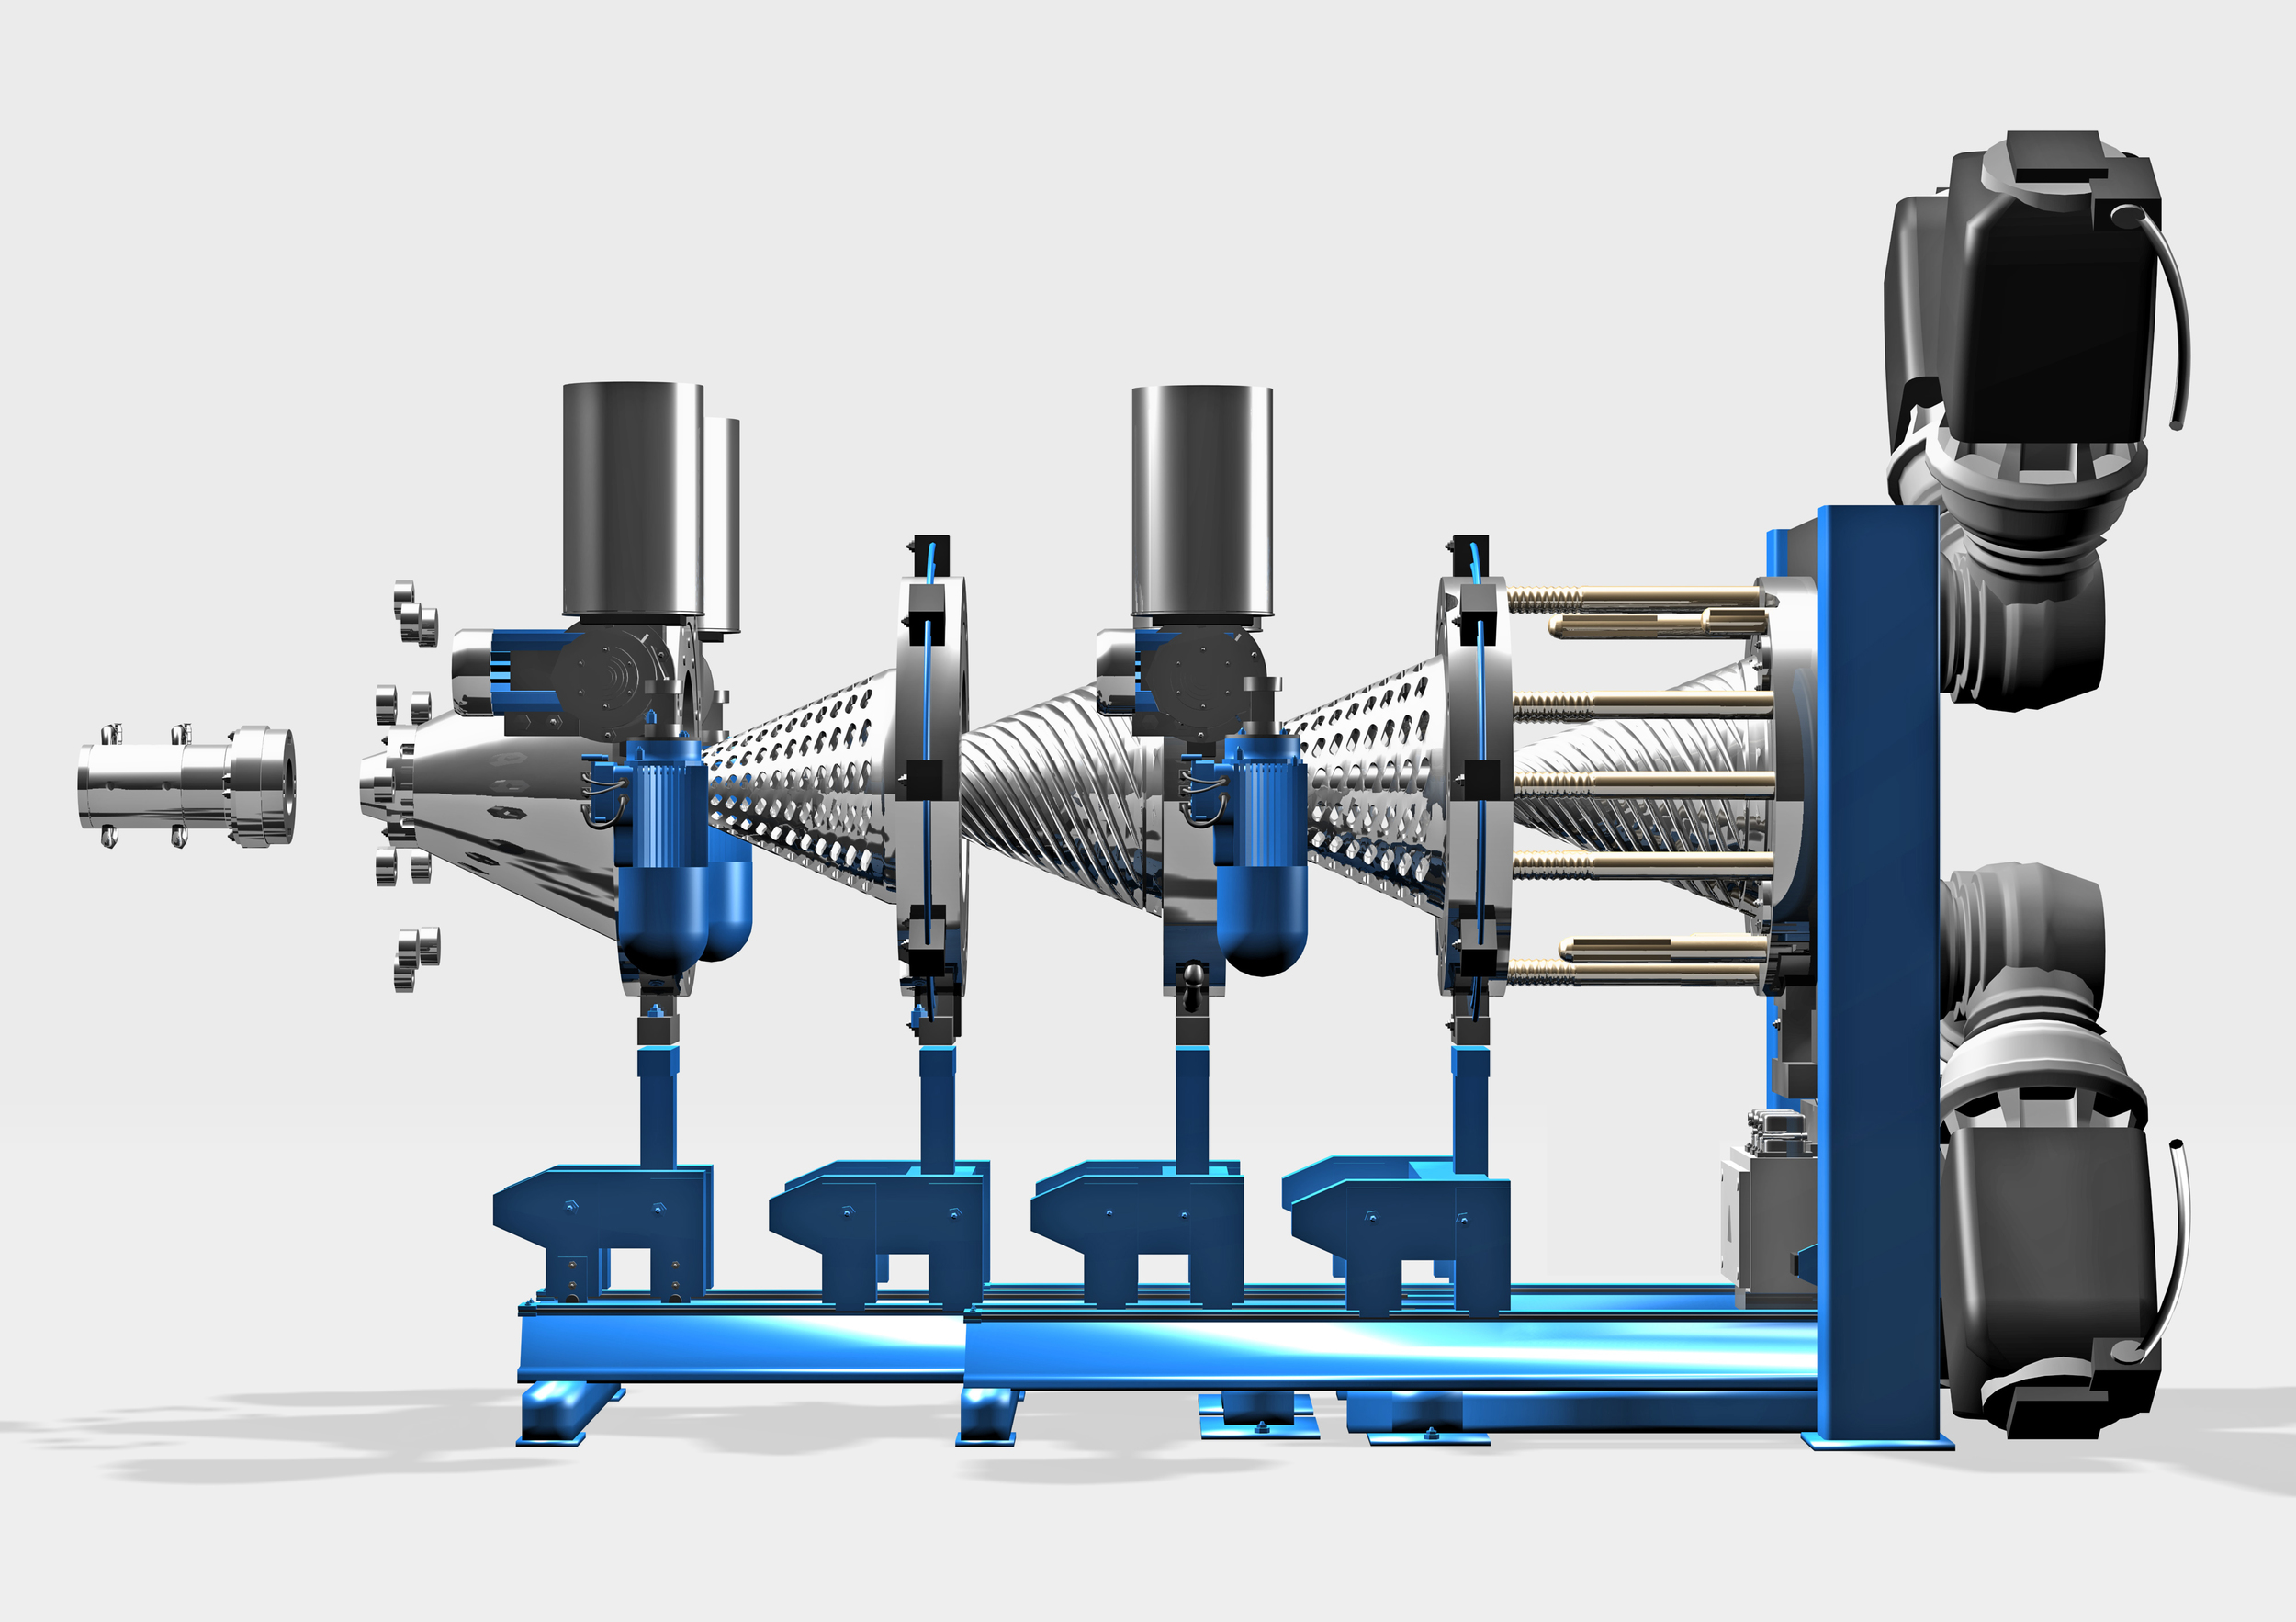 Illustration of a 2-rotor CONEX-extruder at open position with telescopic frame placed on floor